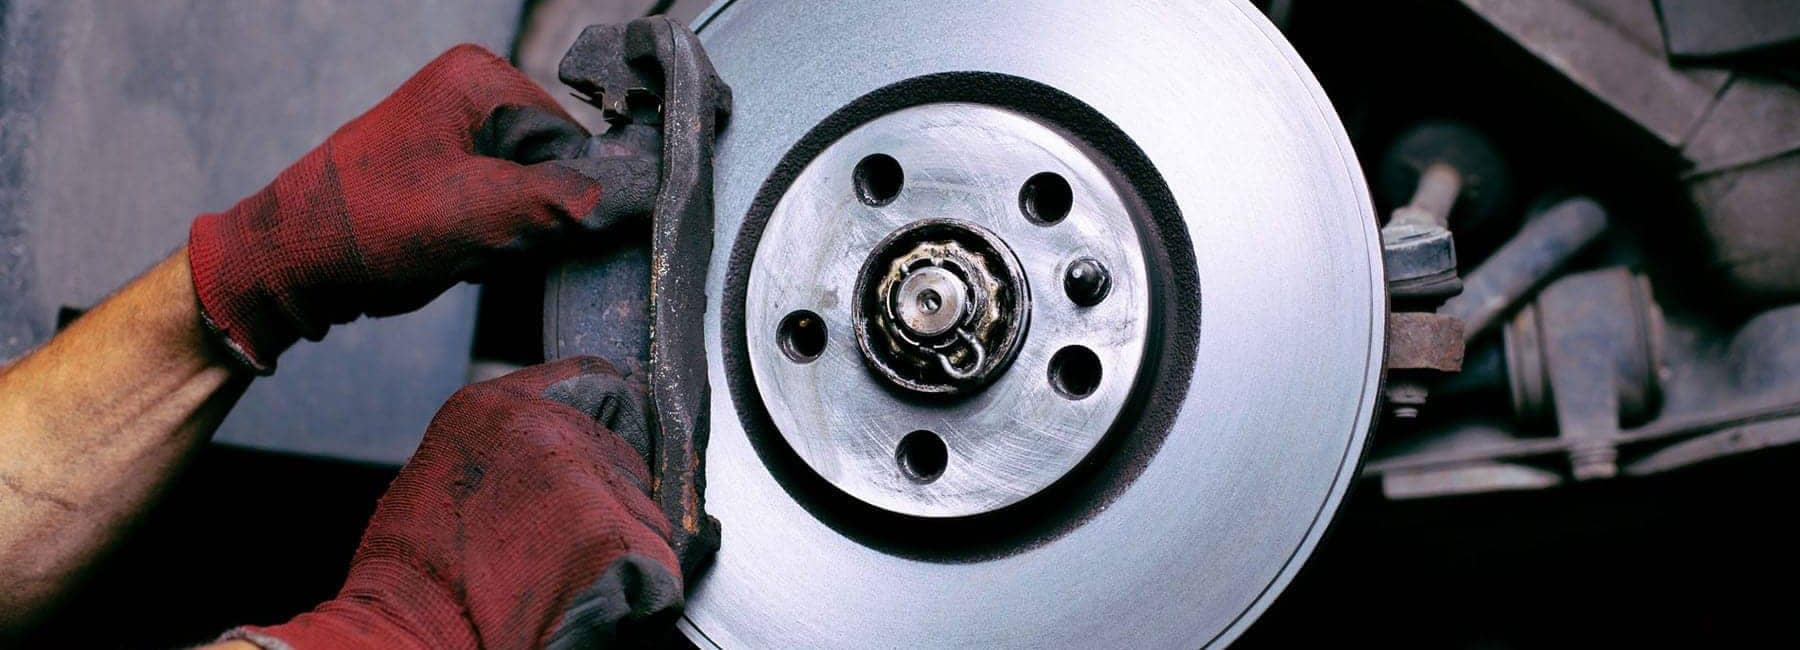 Mechanic replacing the brake pad on a car